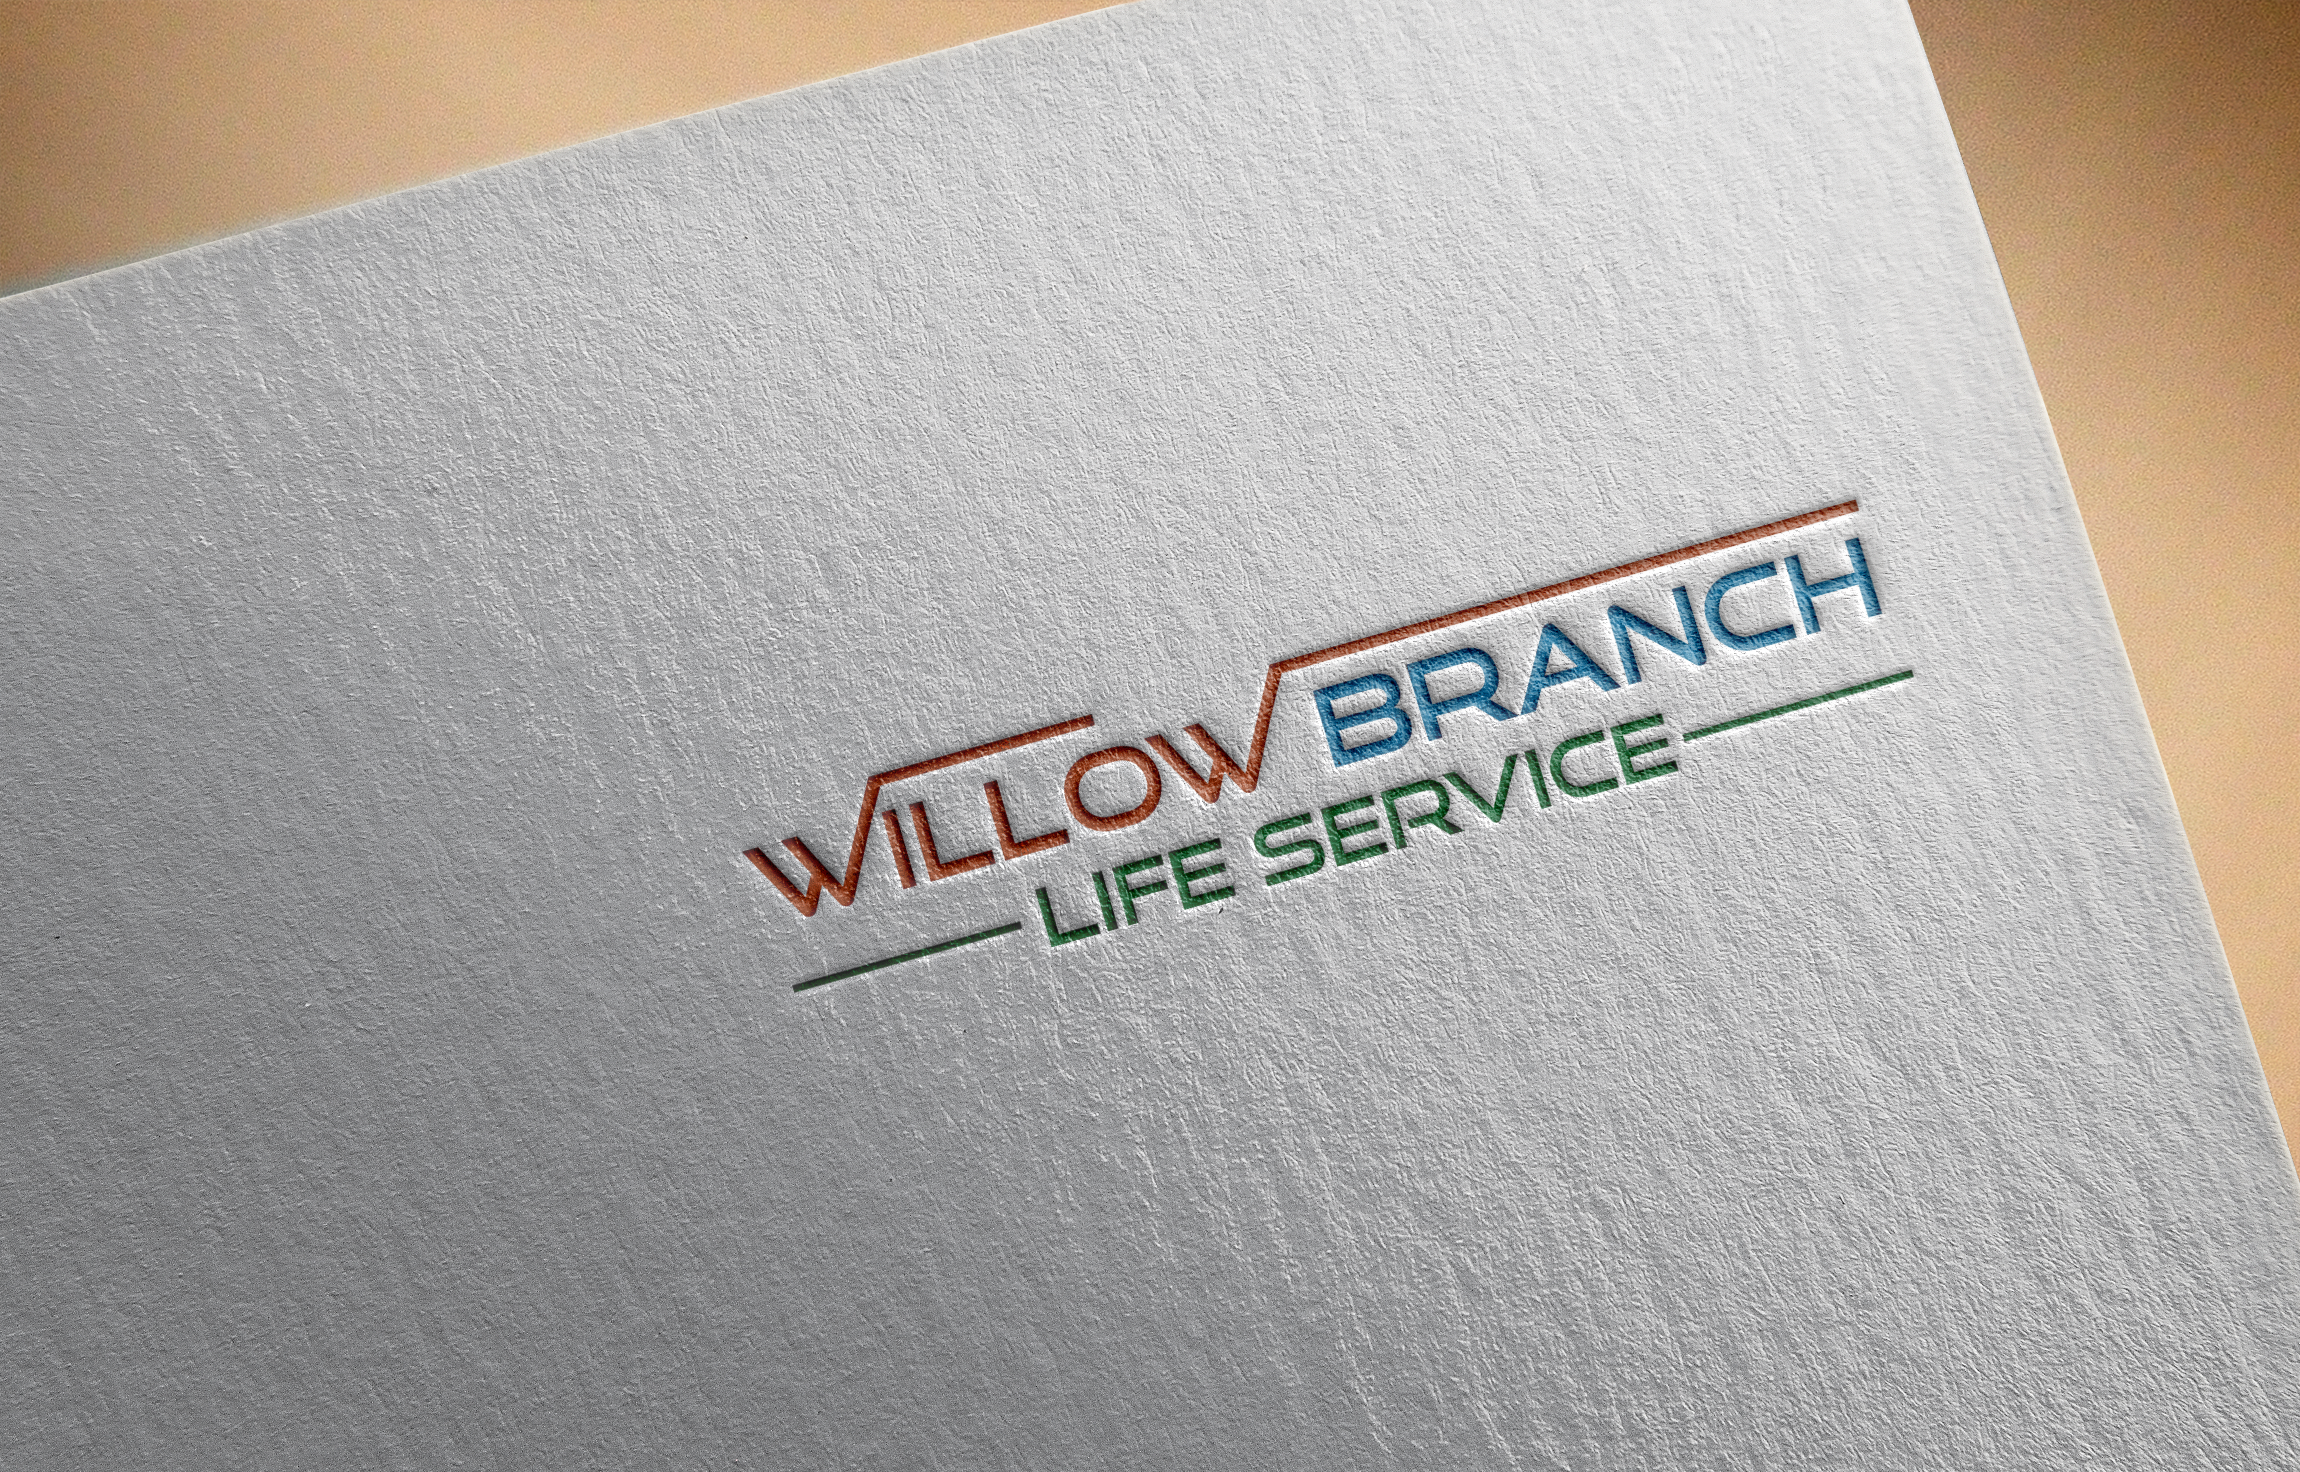 Logo Design by Prohor Ghagra - Entry No. 140 in the Logo Design Contest Artistic Logo Design for Willow Branch Life Service.